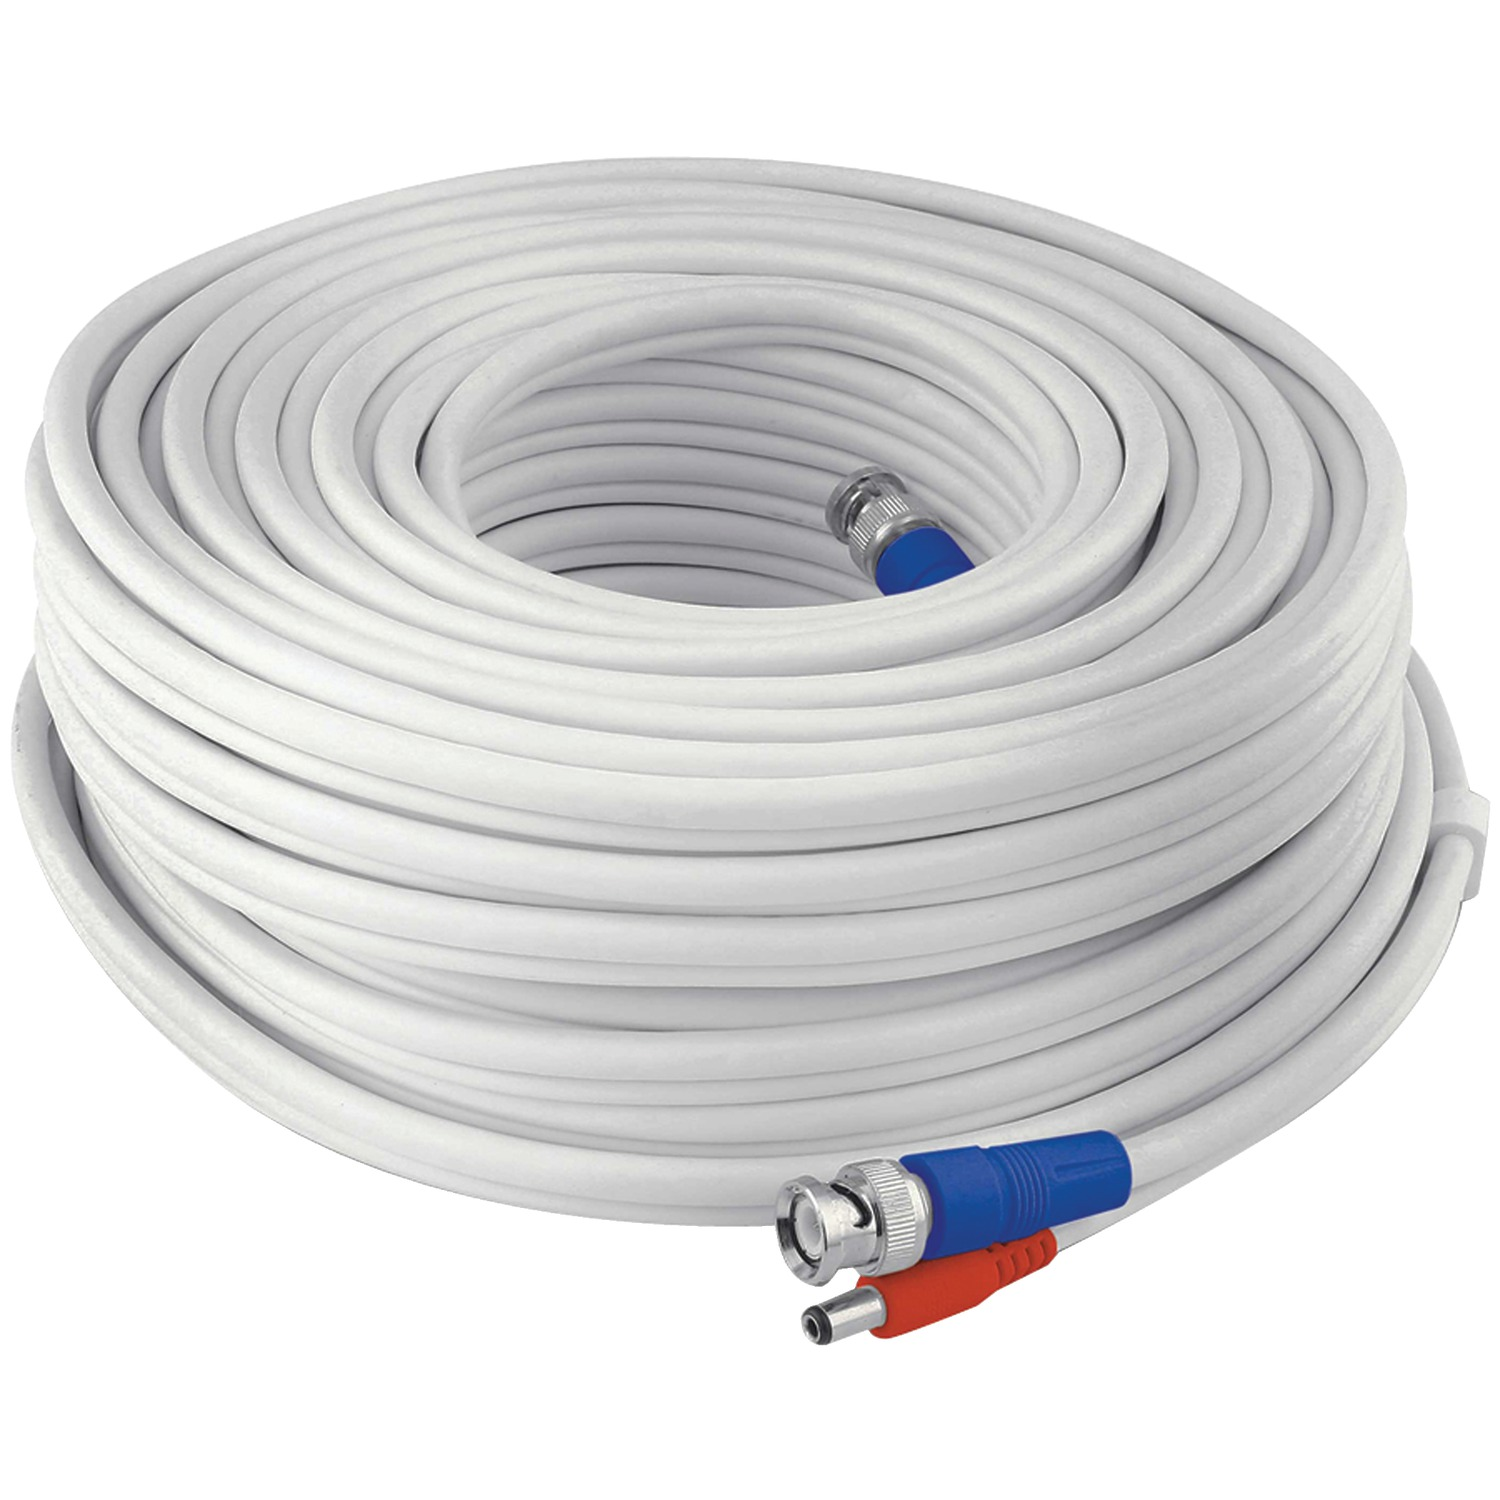 swann swpro 60mtvf gl fire rated bnc video power extension cable 200ft. Black Bedroom Furniture Sets. Home Design Ideas